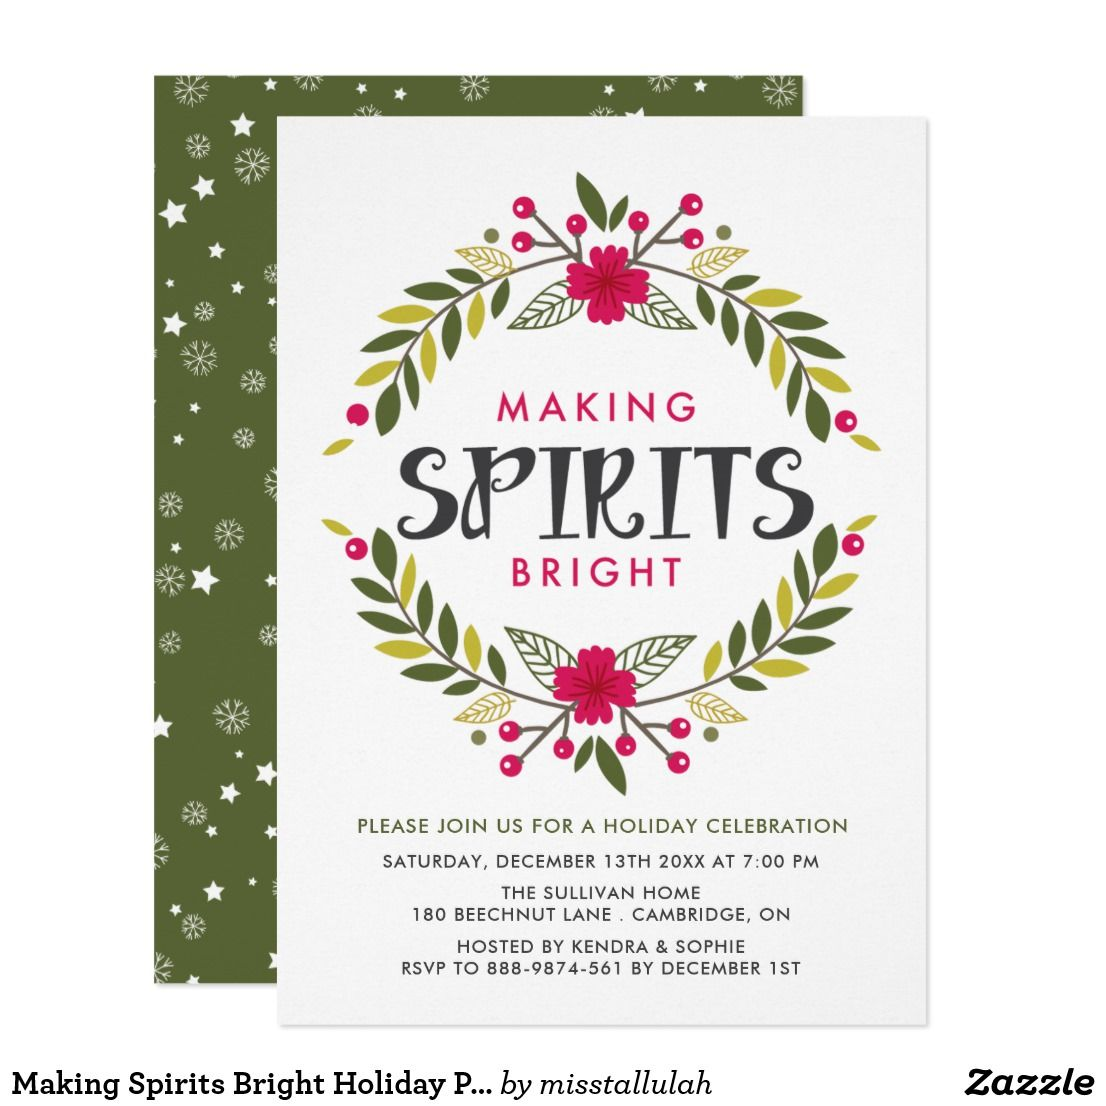 Making Spirits Bright Holiday Party Invitation | Holiday party ...